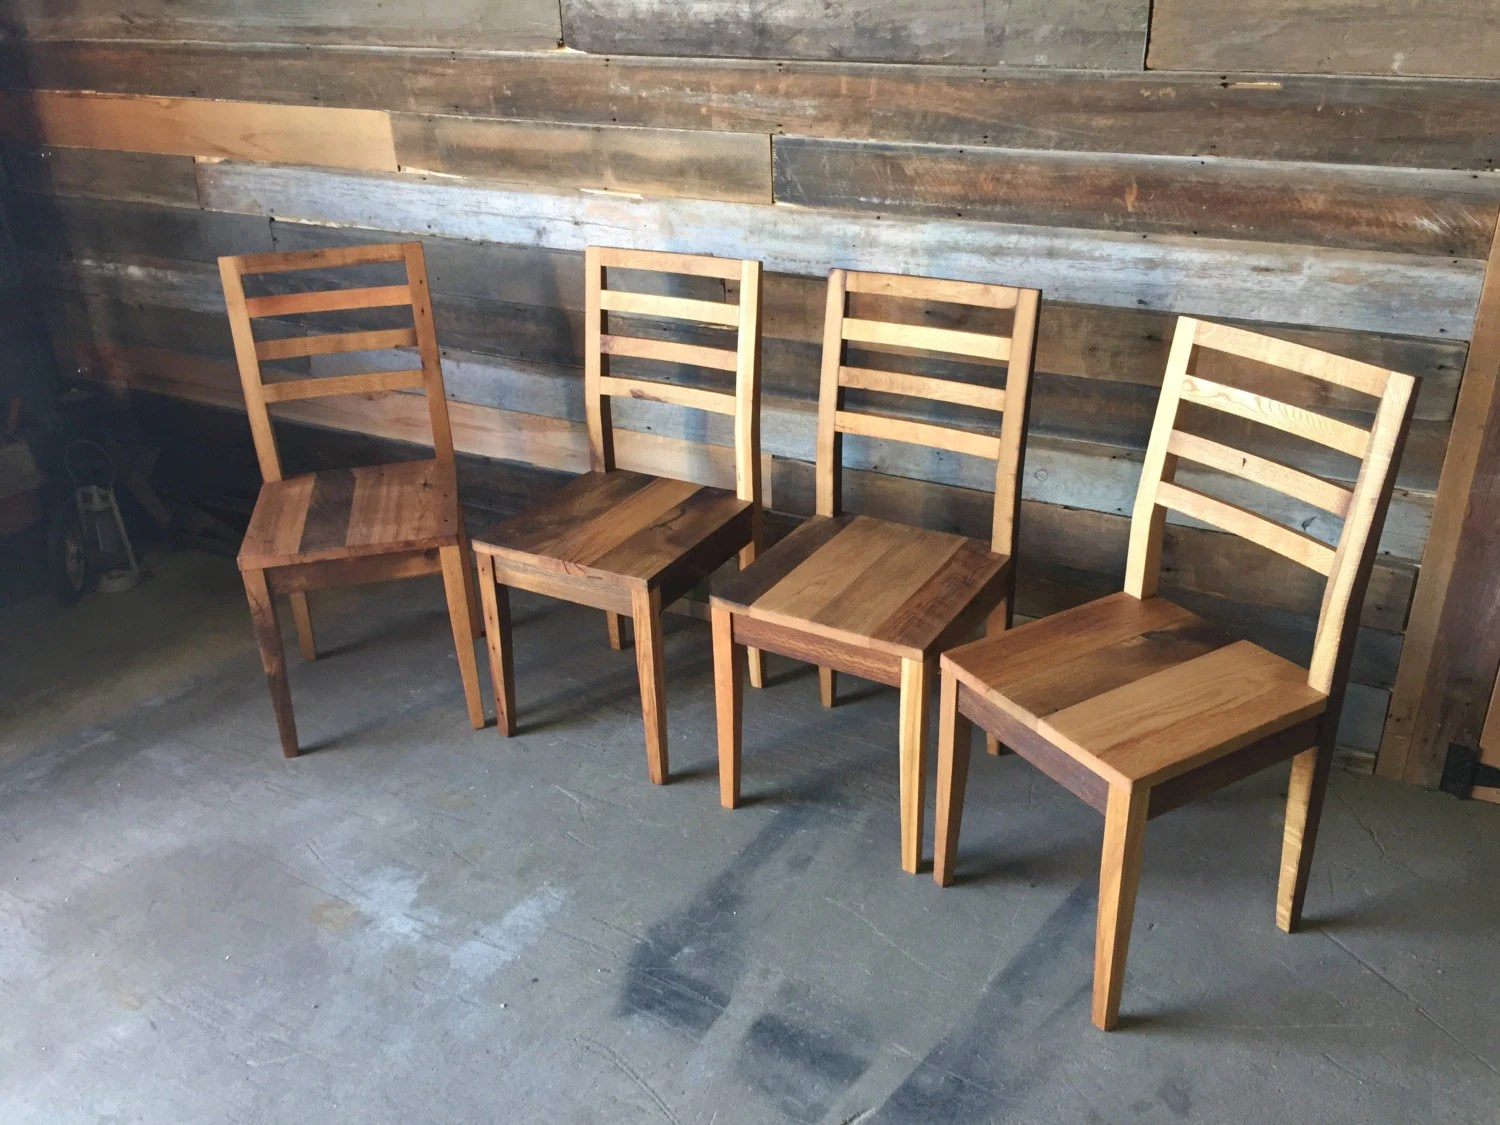 barnwood dining room chairs chair covers hire sunshine coast reclaimed barn wood with tapered legs